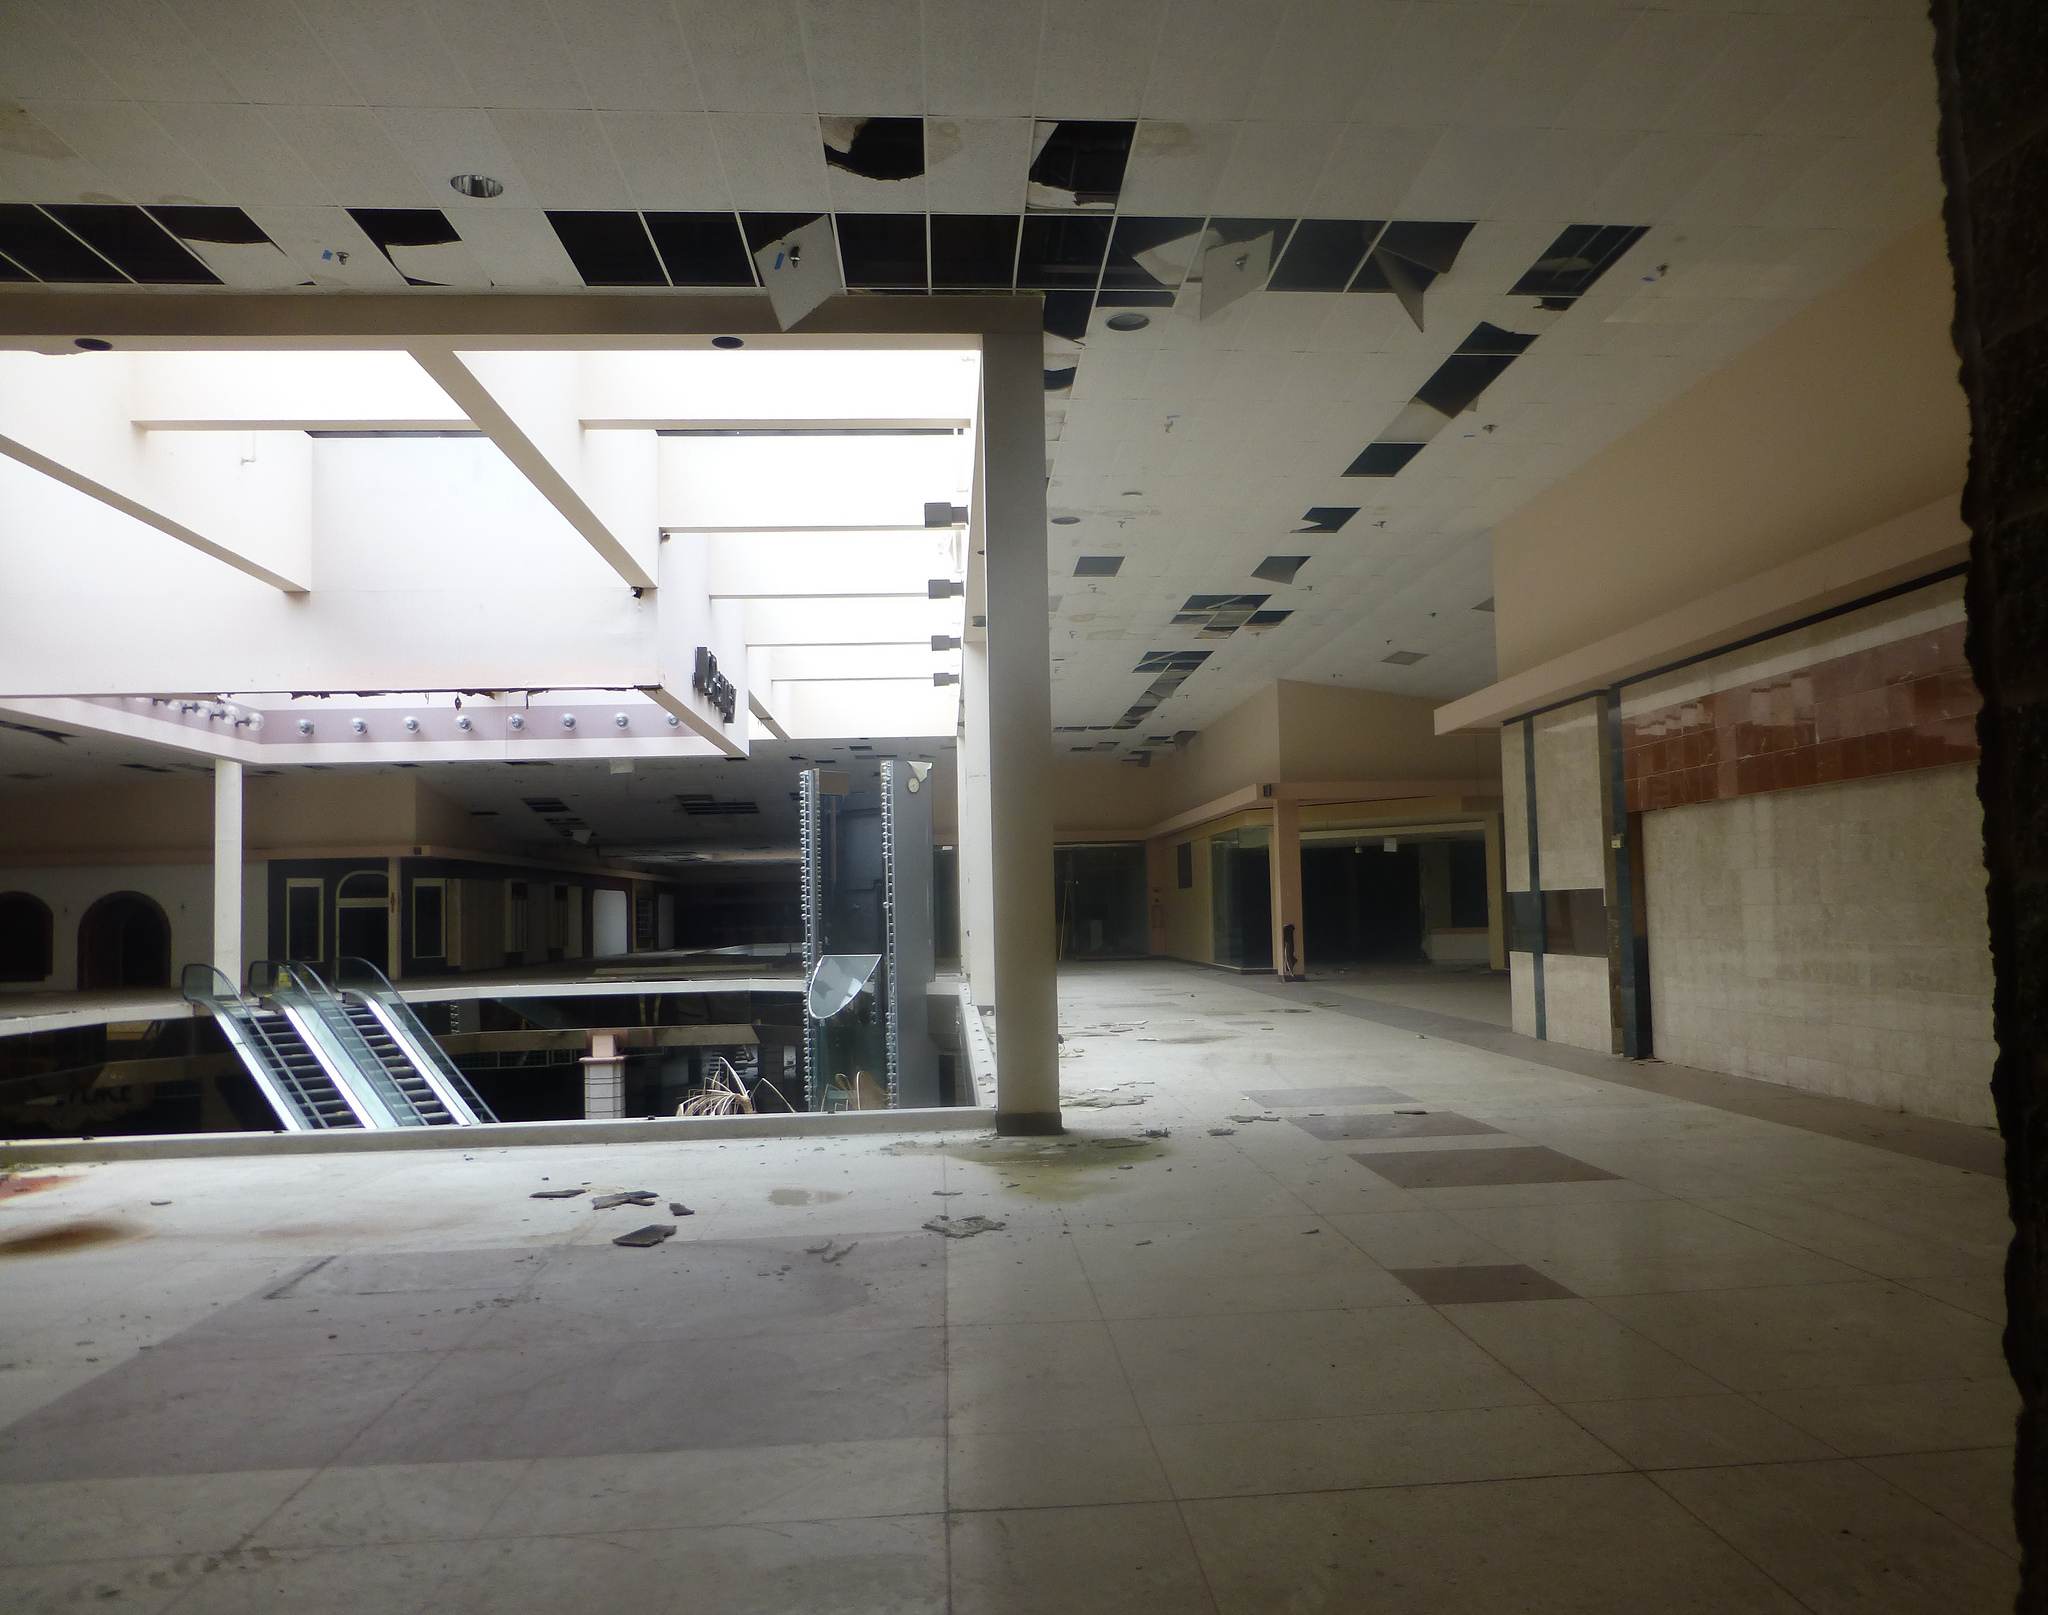 Rolling Acres  abandoned mall interior, Akron, Ohio. Flickr/  Nicholas Eckhart , used under  CC BY .